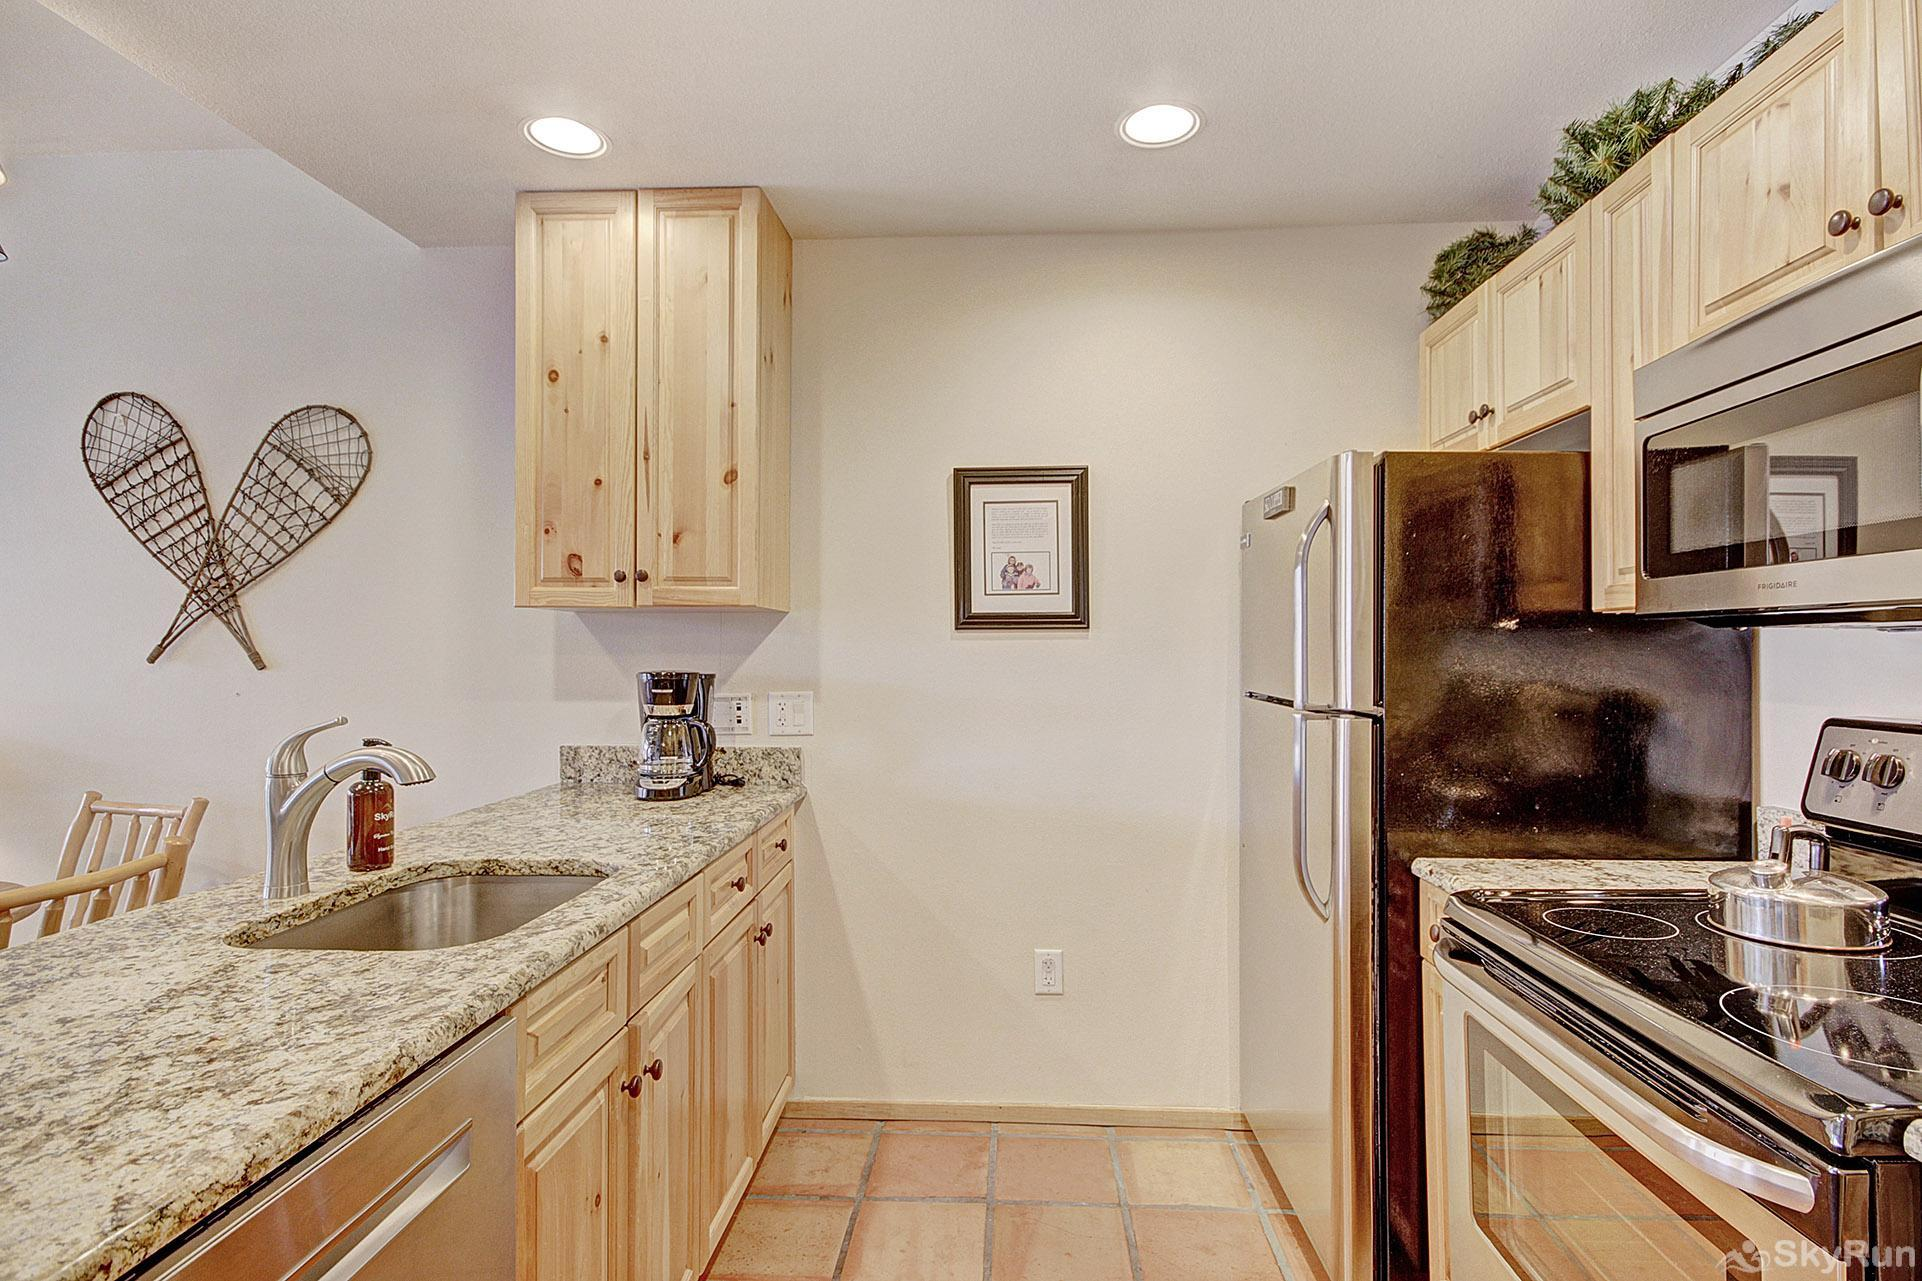 TM407BR1 Tucker Mtn Lodge Beautiful Fully Equipped Kitchen